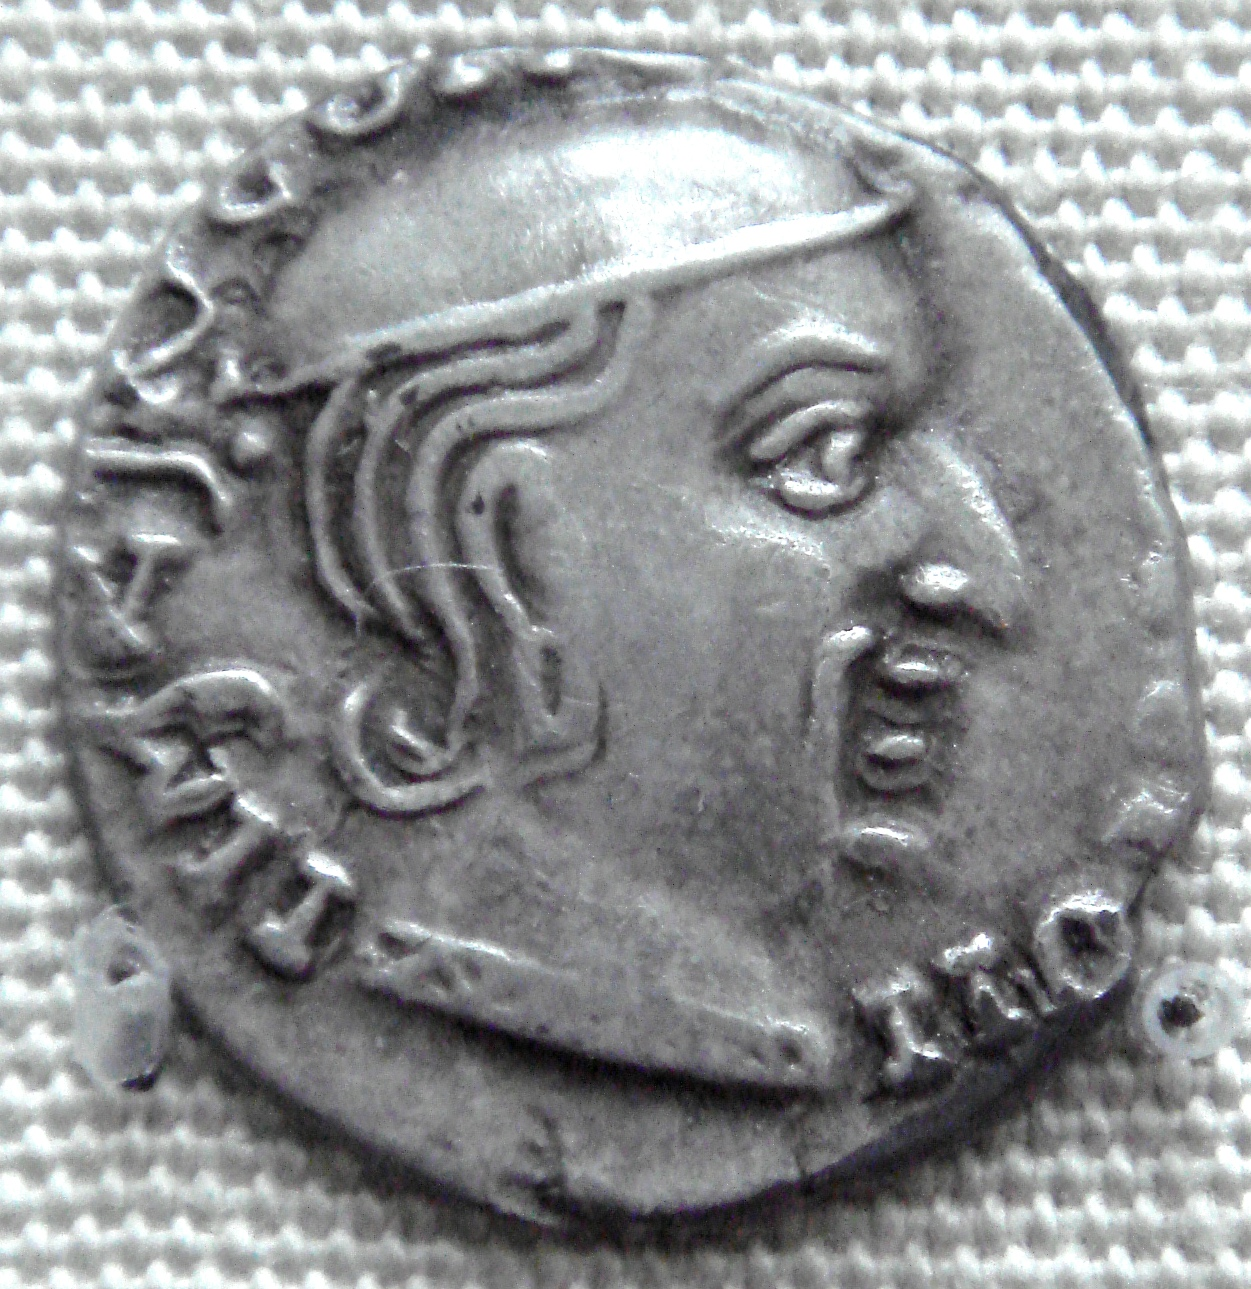 file coin of jivadaman shaka era ce jpg  file coin of jivadaman 119 shaka era 197 ce jpg